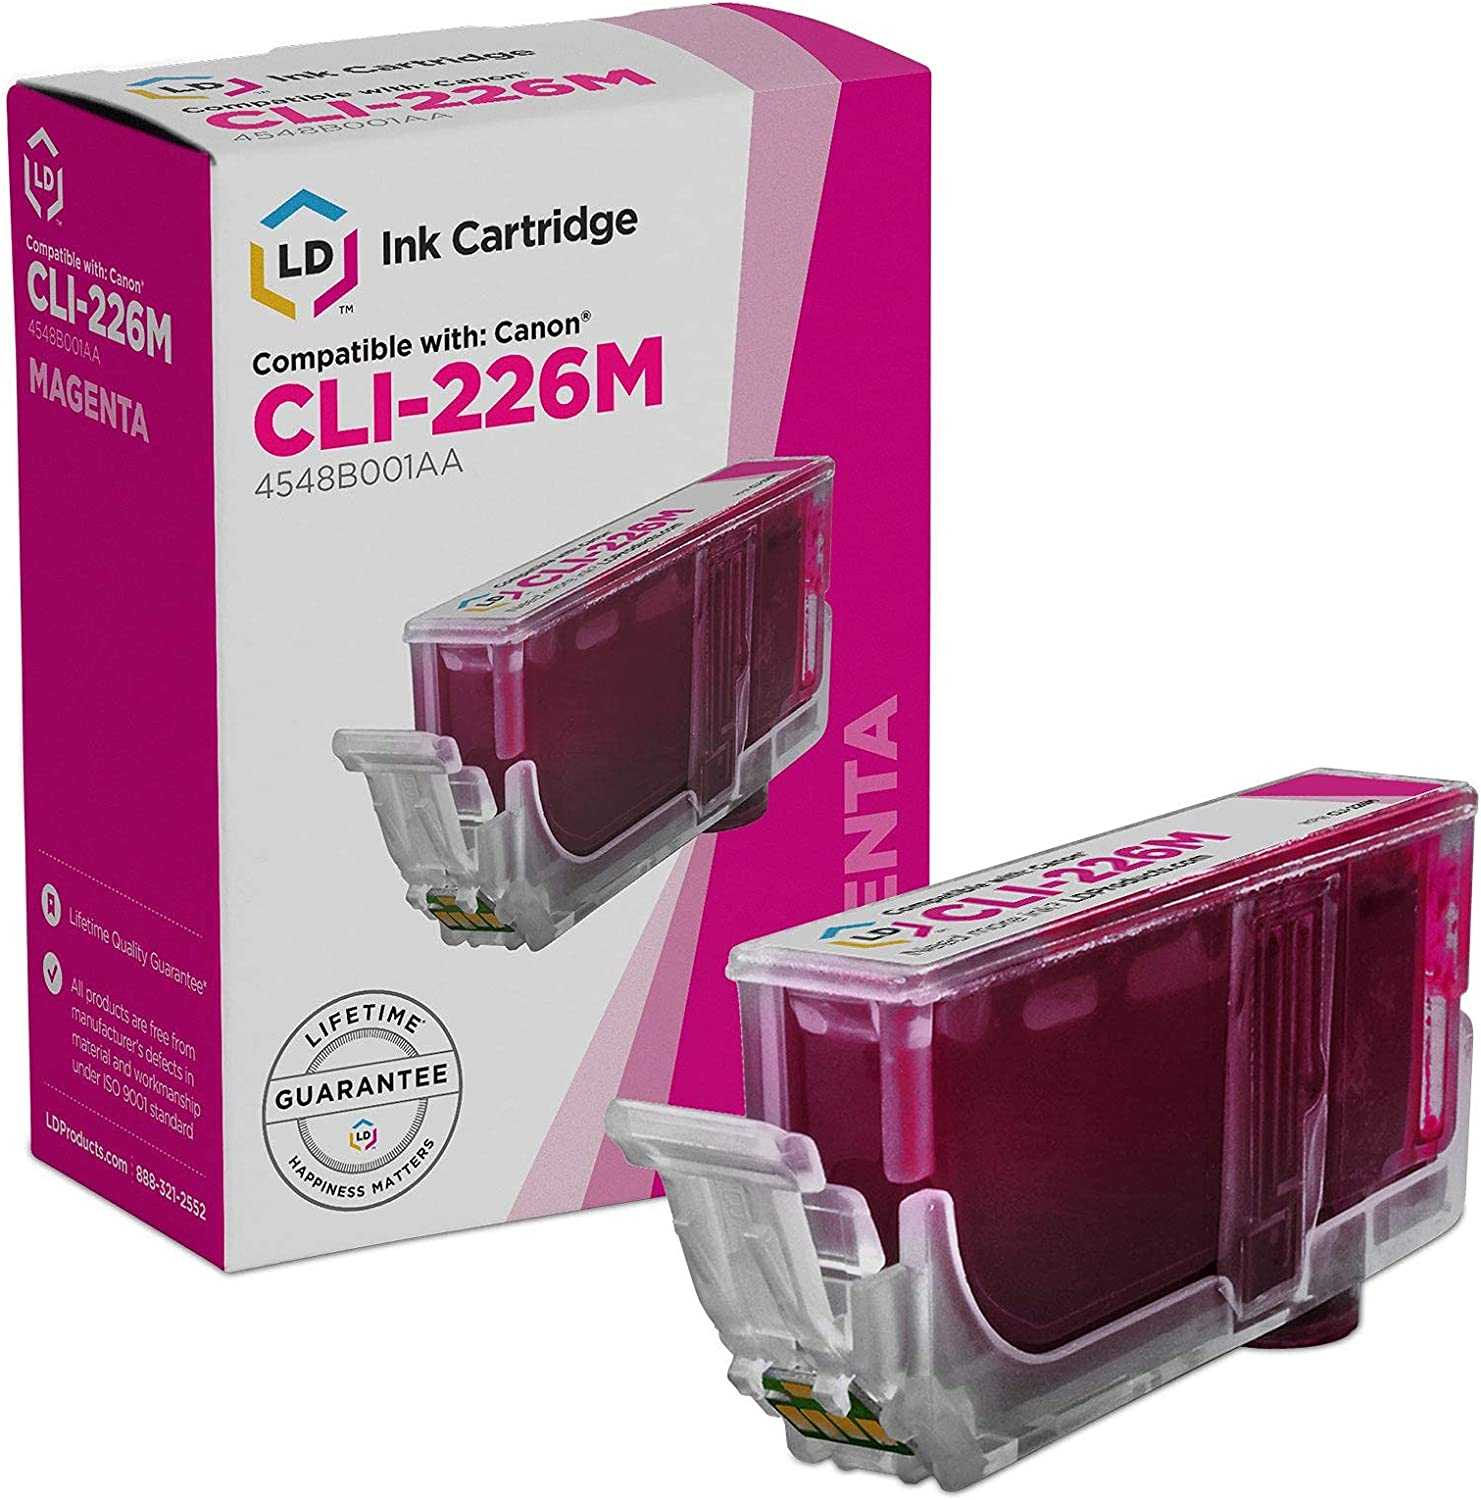 LD Compatible Ink Cartridge Replacement for Canon CLI-226M 4548B001AA (Magenta)